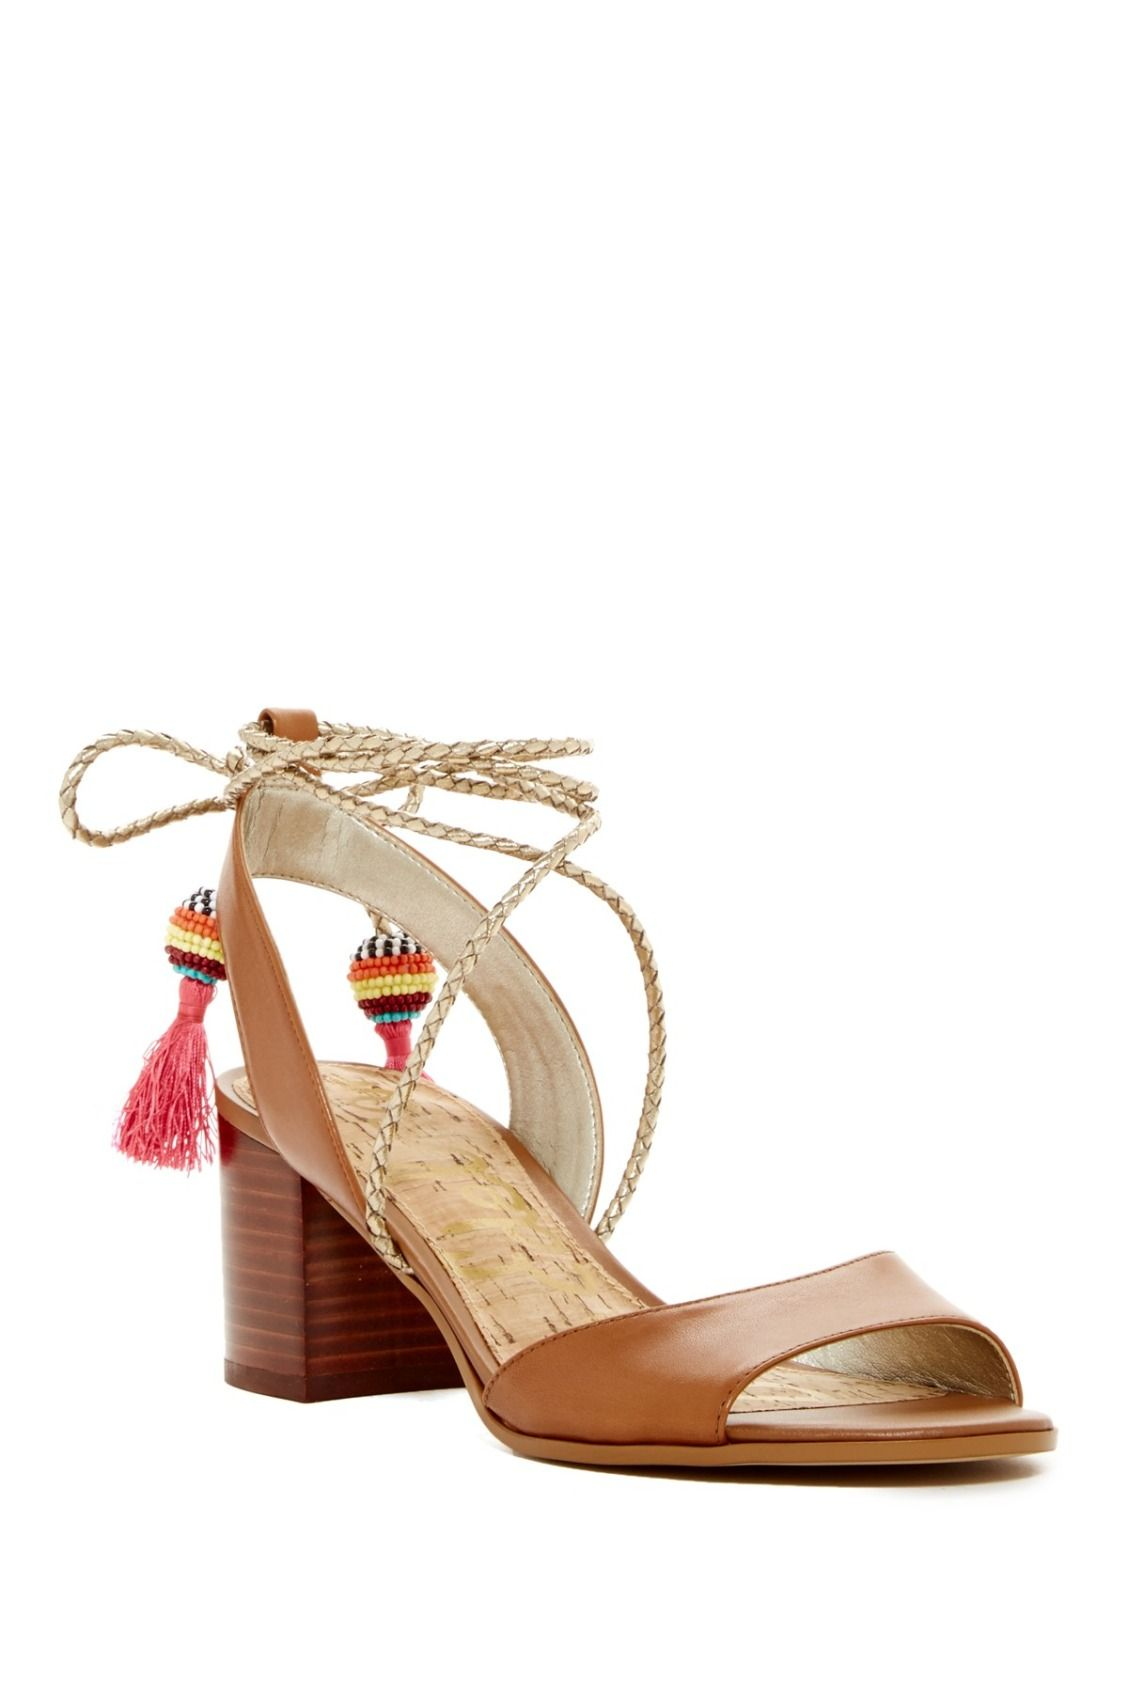 Need these for spring + summer! Sam Edelman Shani Block Heel Sandals